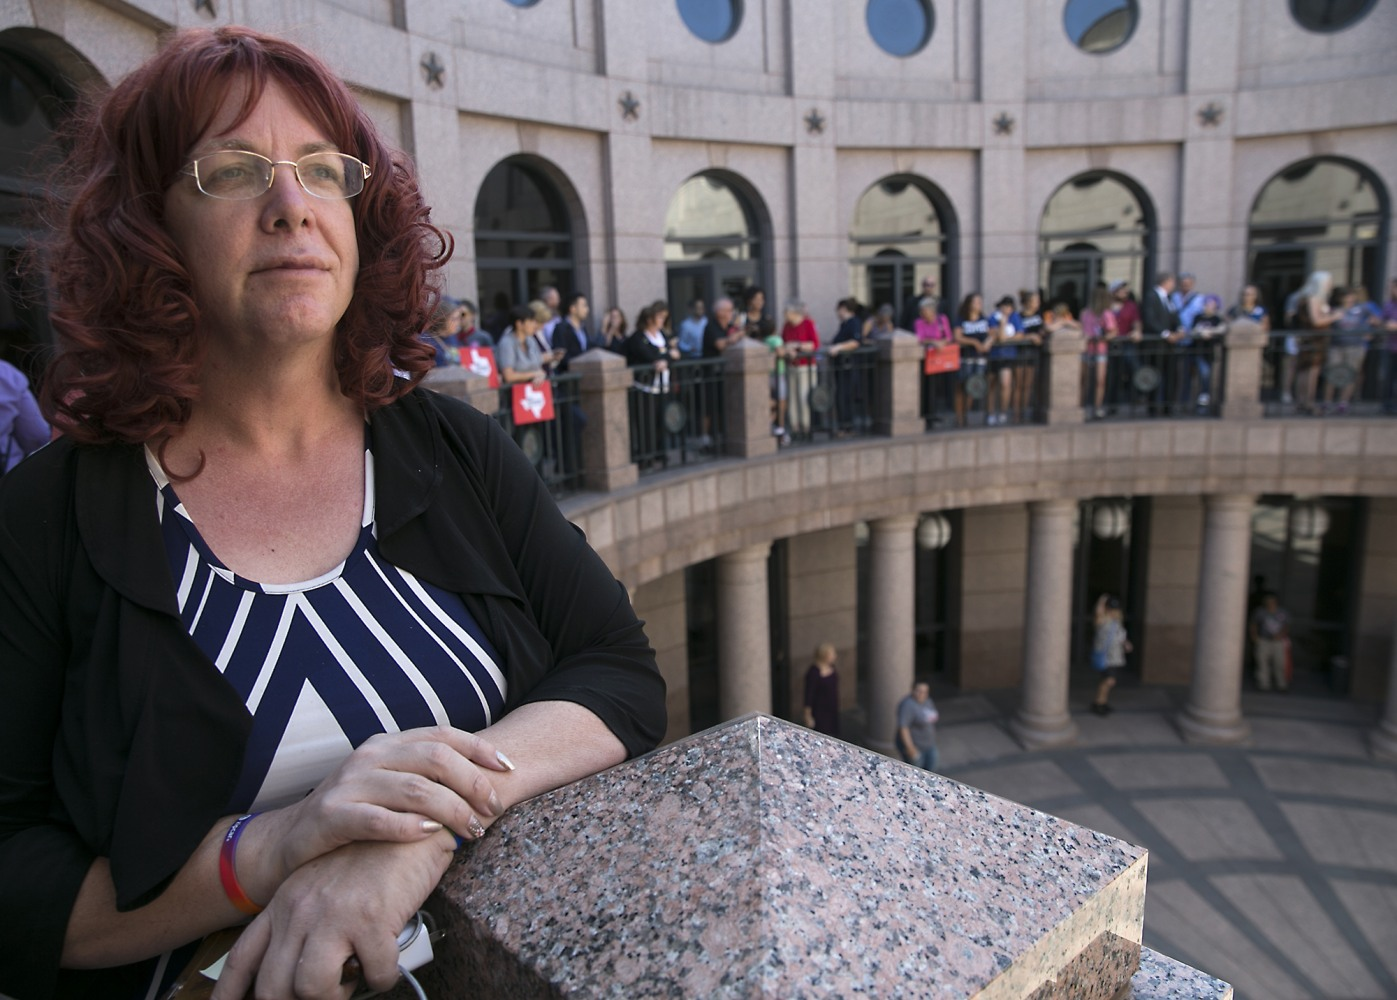 Despite hours of testimony against the Texas bathroom bill, it passes